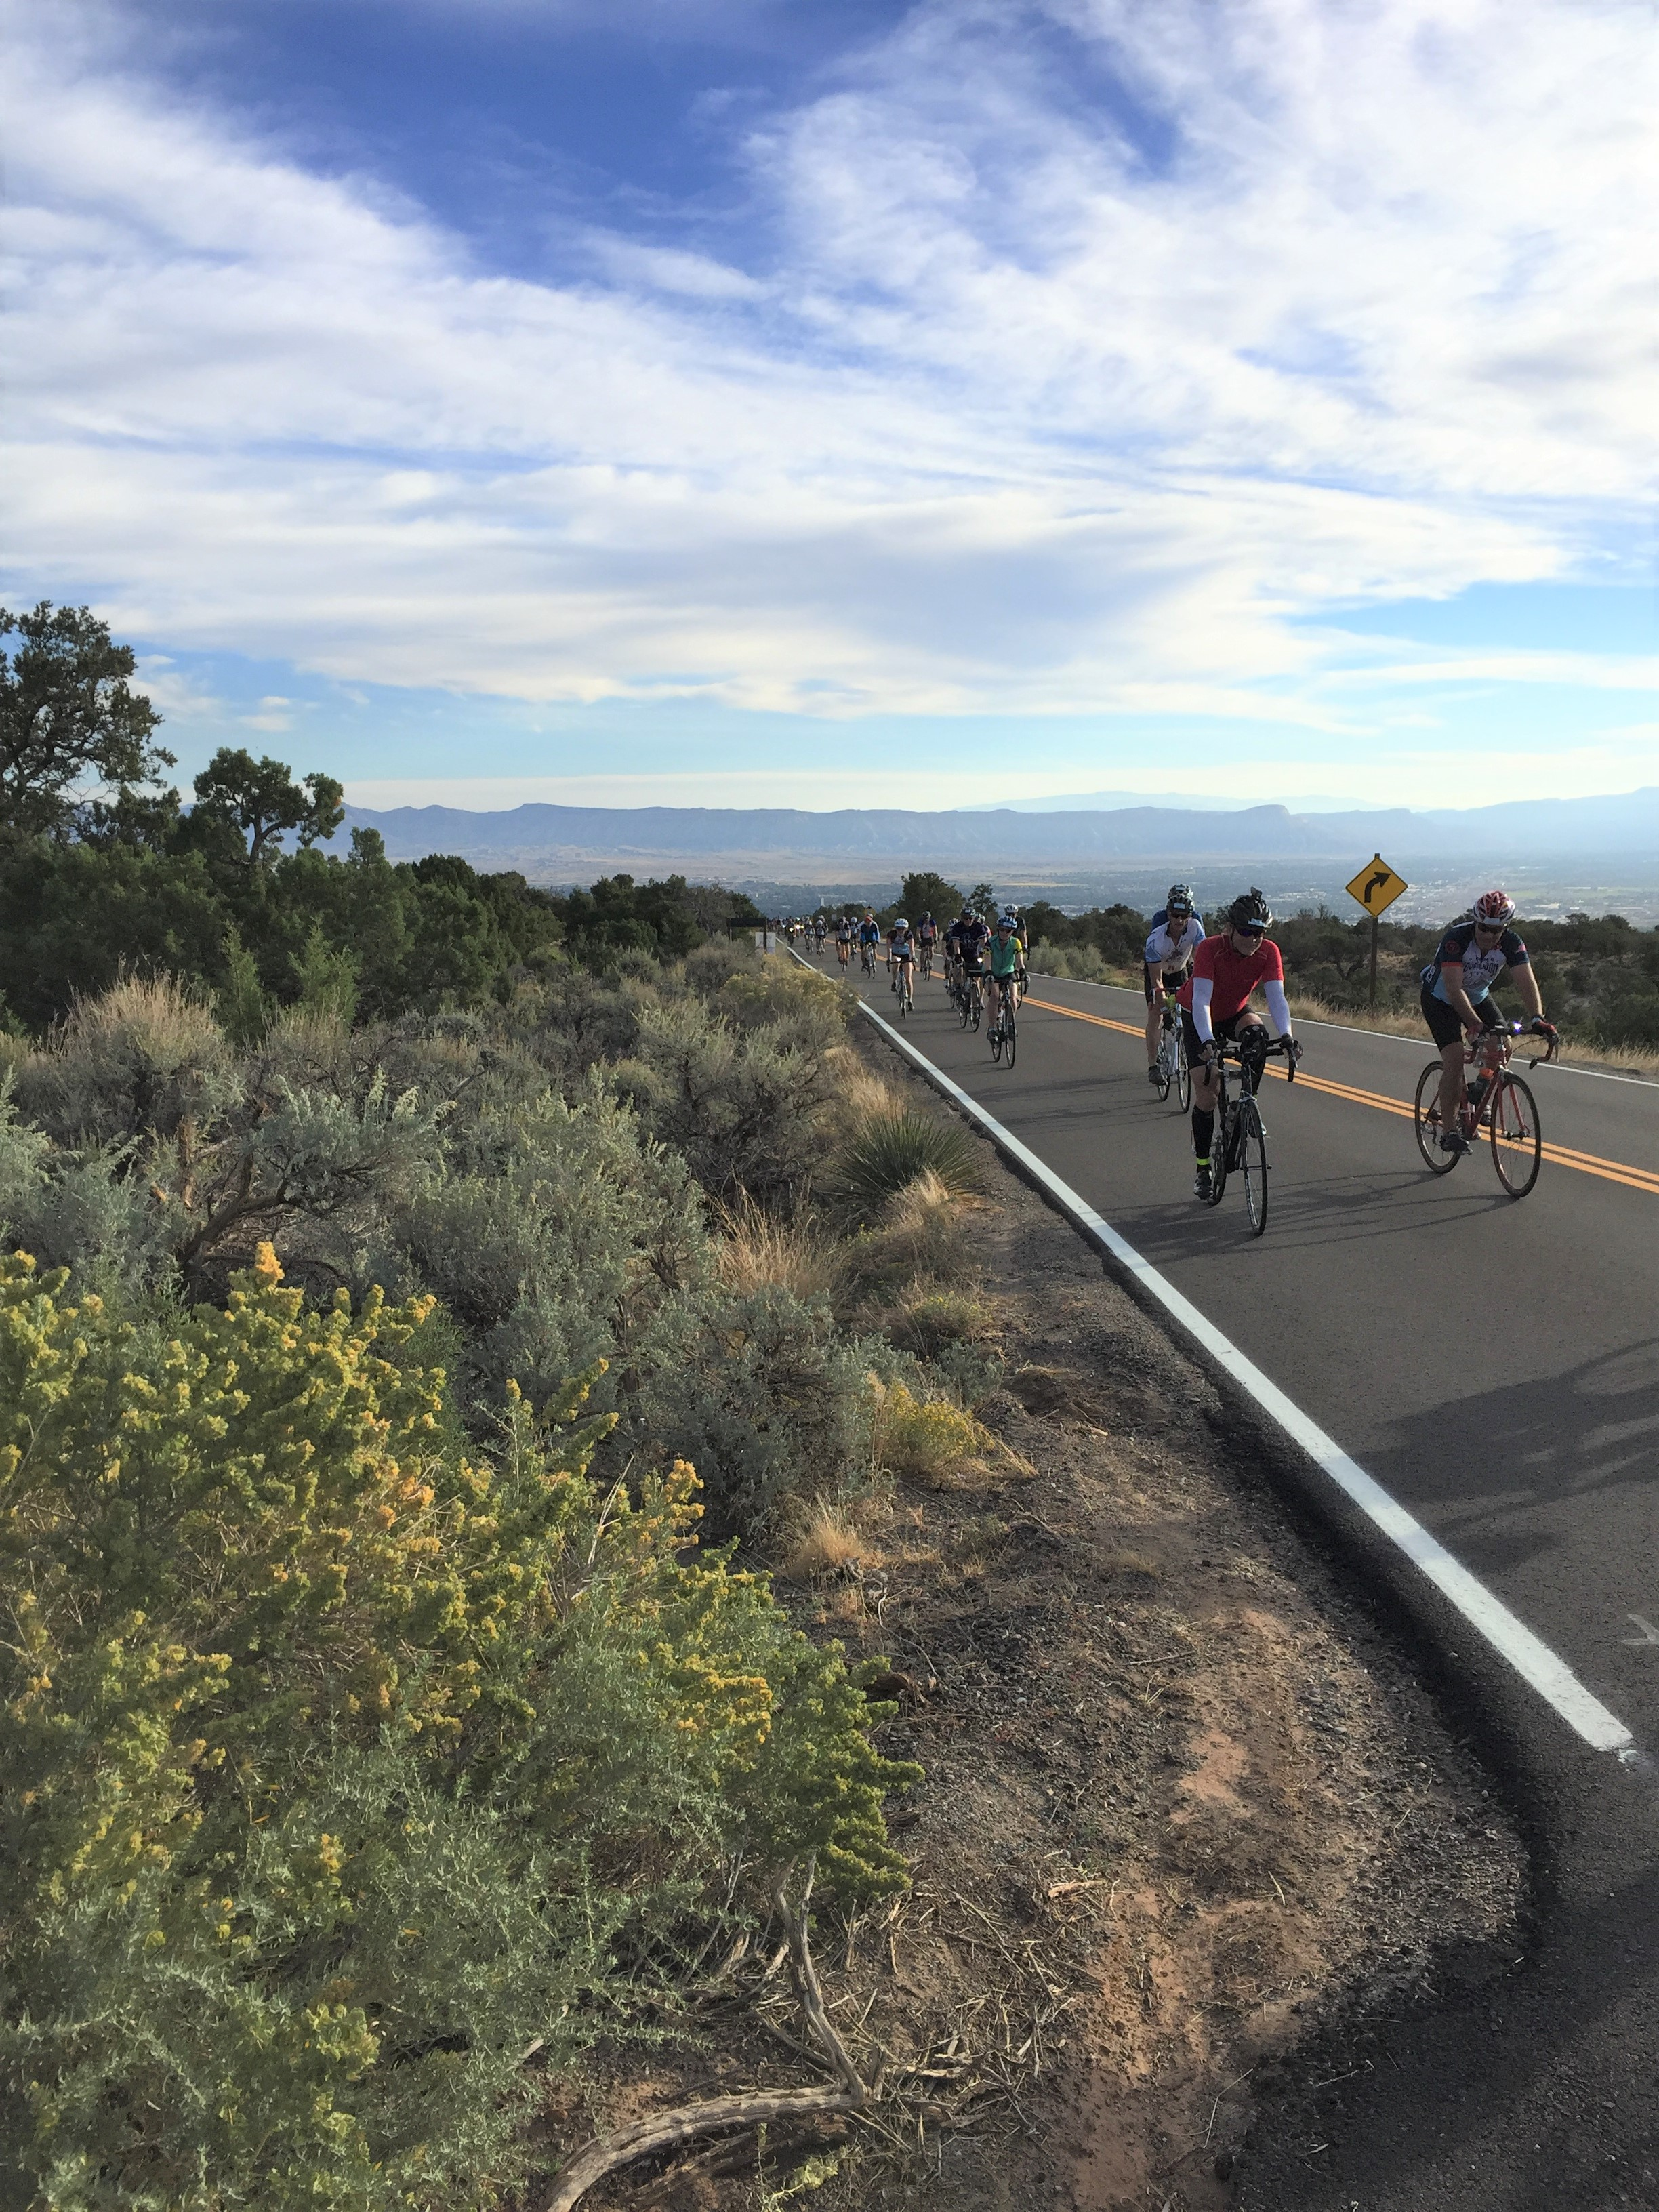 15-20 bicyclists riding on an asphalt road with sagebrush on the near side of the road.